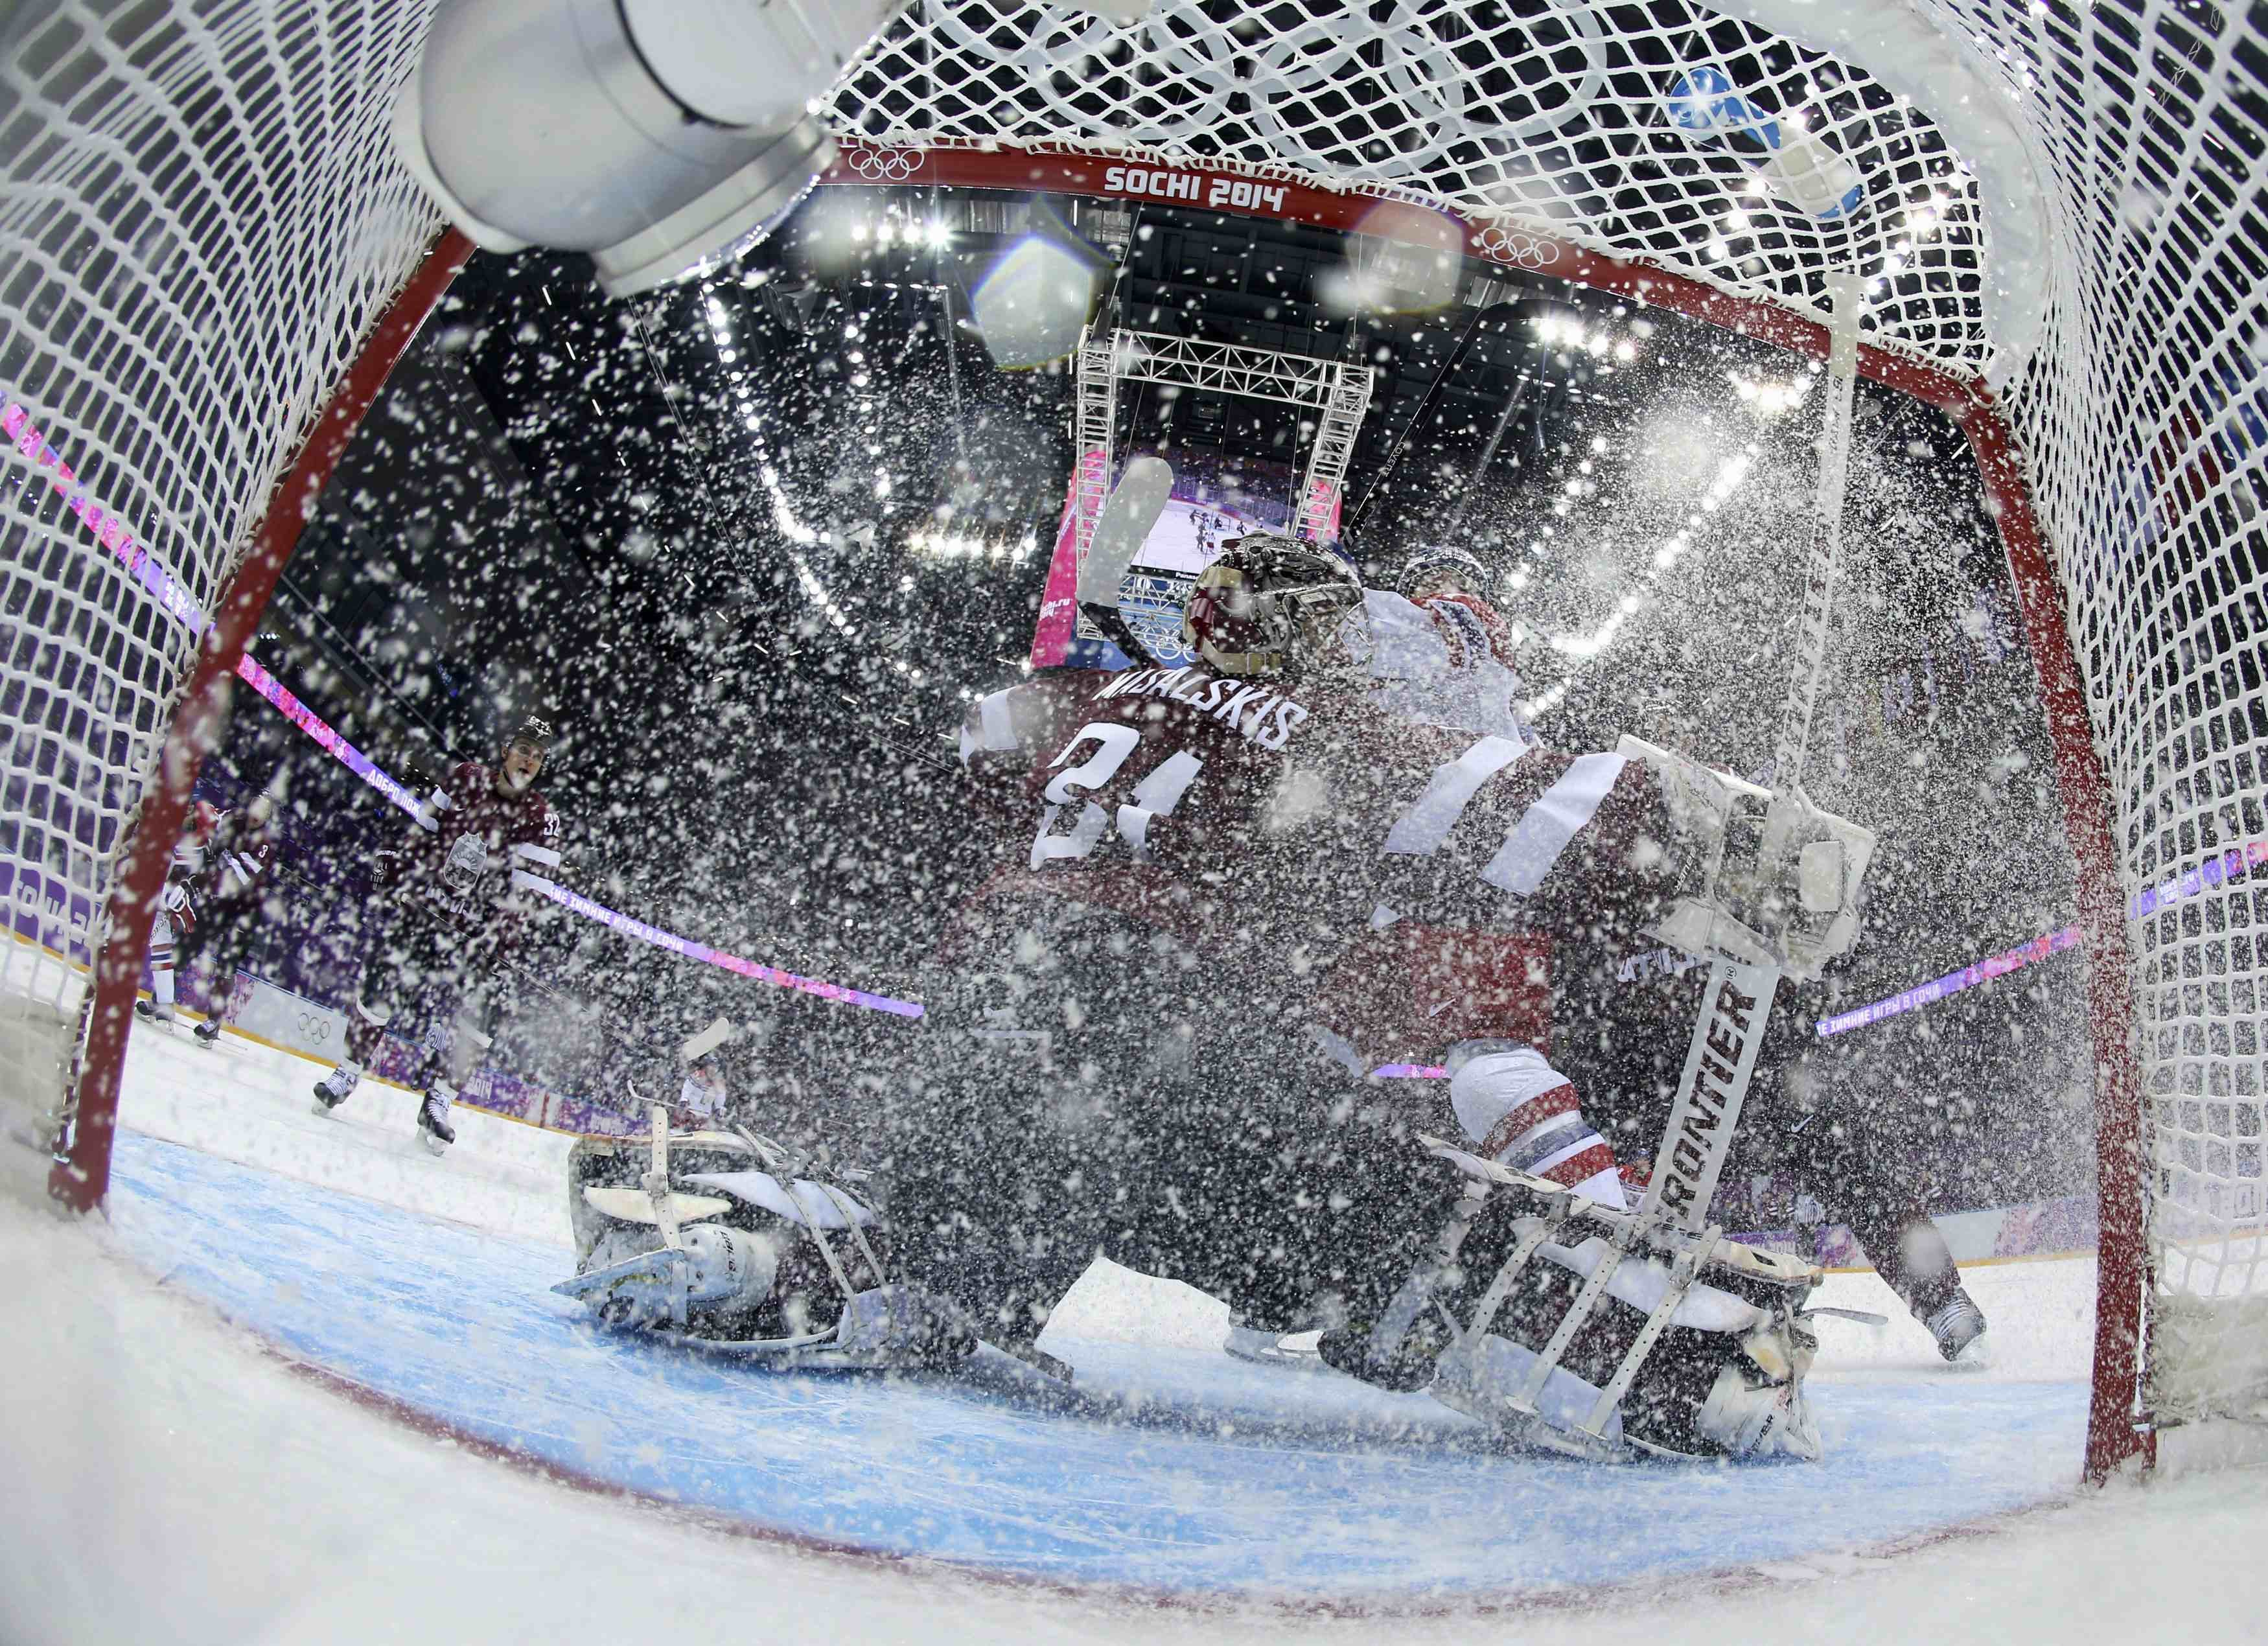 Latvia's goalie Edgars Masalskis makes a save against the Czech Republic during the first period of their men's preliminary round ice hockey game.